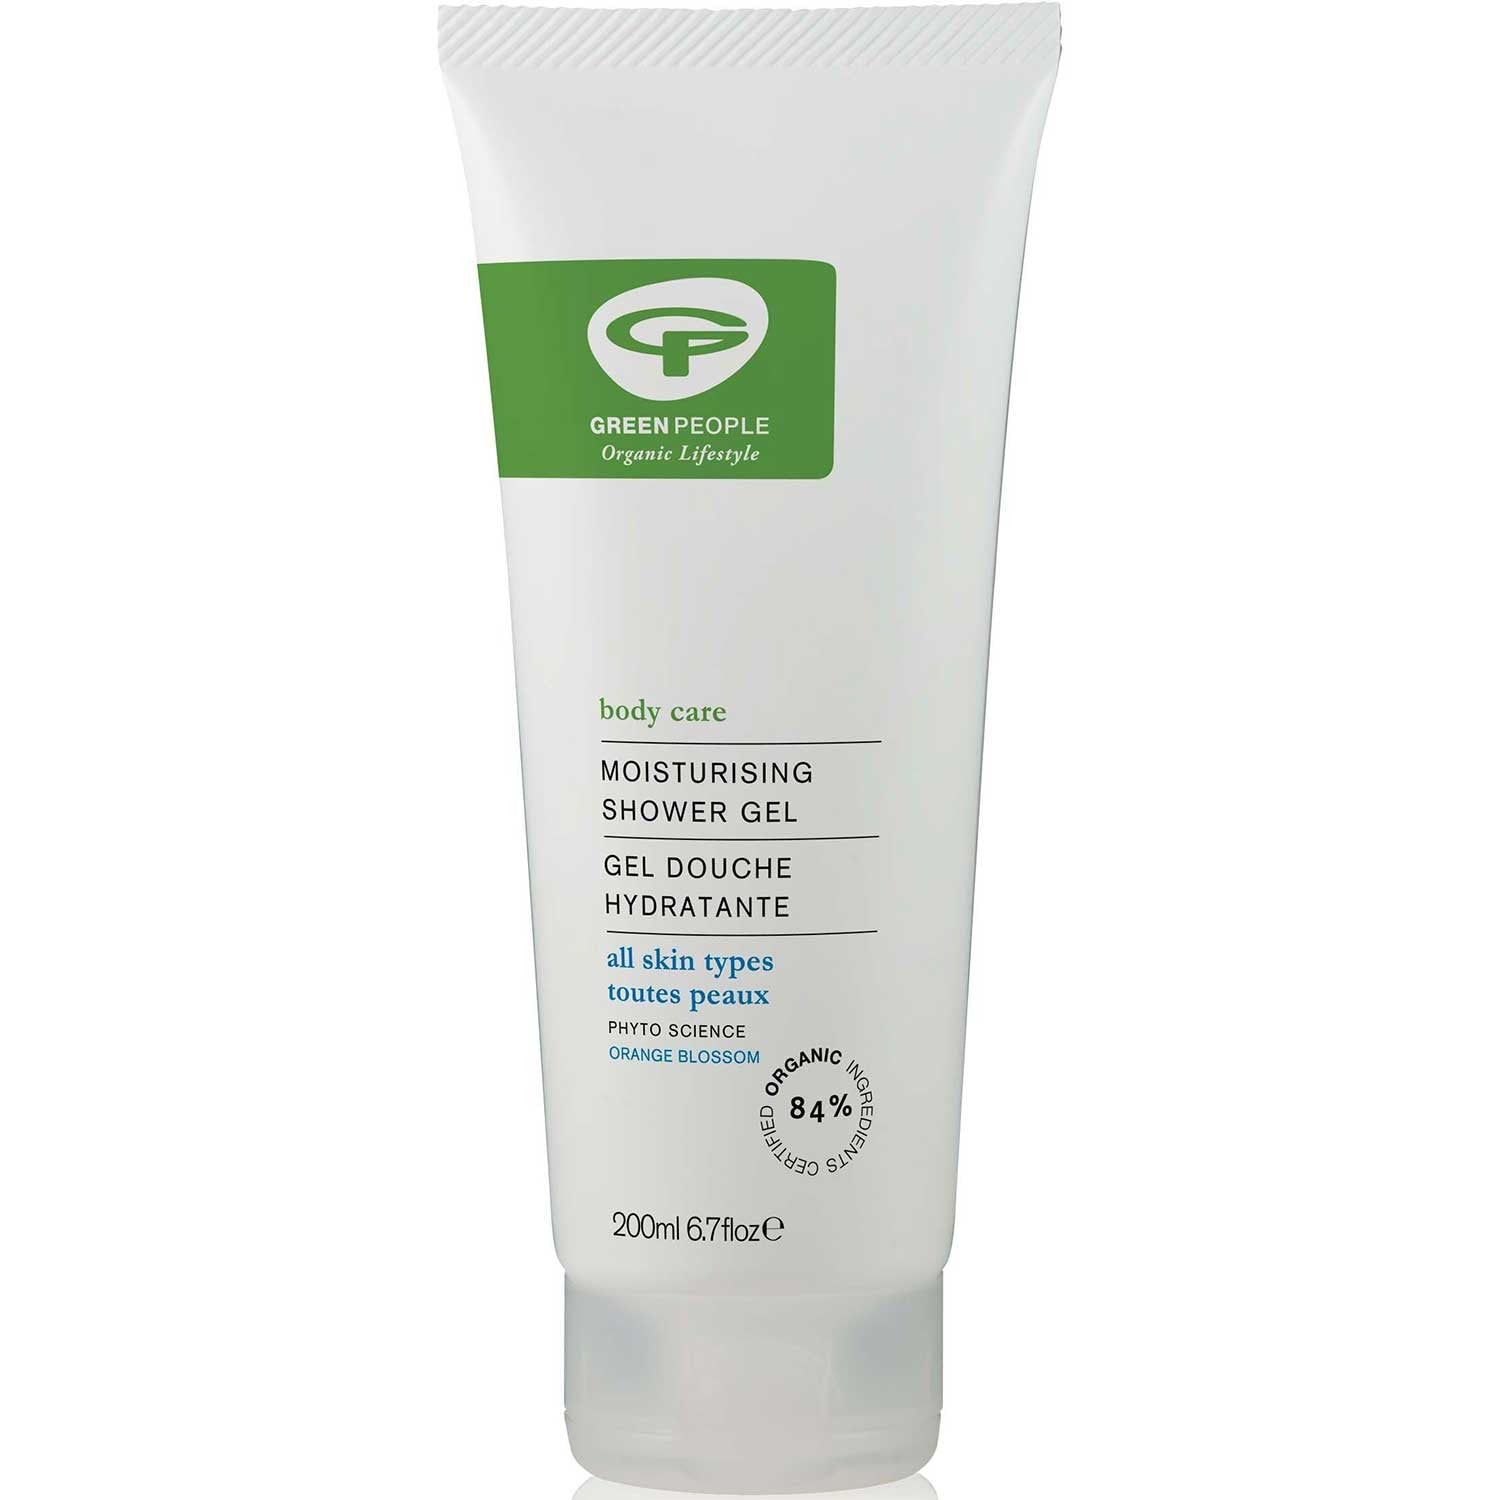 Green People Moisturising Shower Gel, 200 ml.-NaturesWisdom